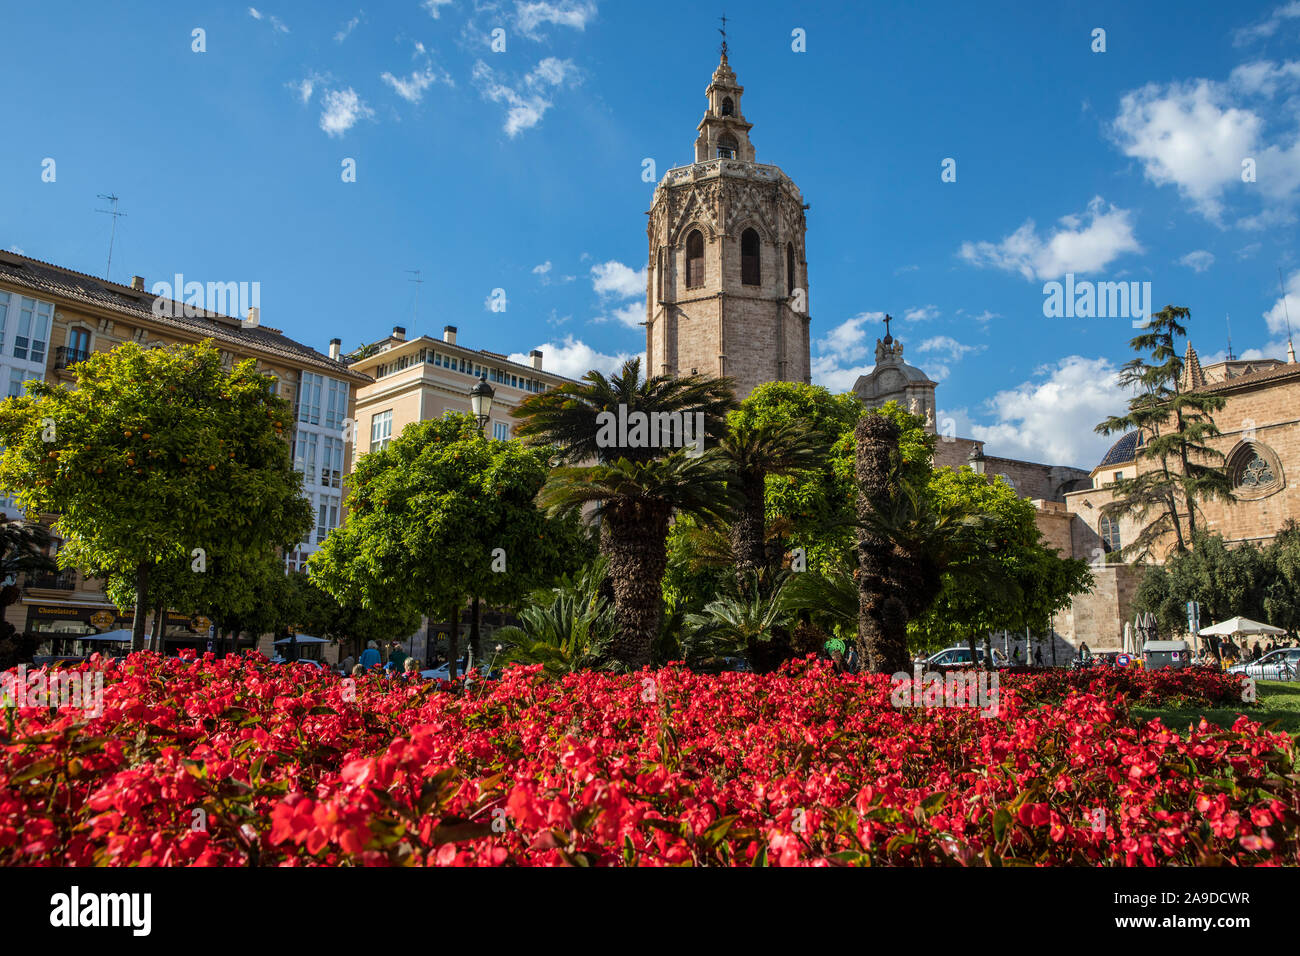 Valencia, Spain - April 11th 2019: A beautiful view of Torre del Micalet, also known as El Miguelete, the bell tower of Valencia Cathedral, in the his Stock Photo